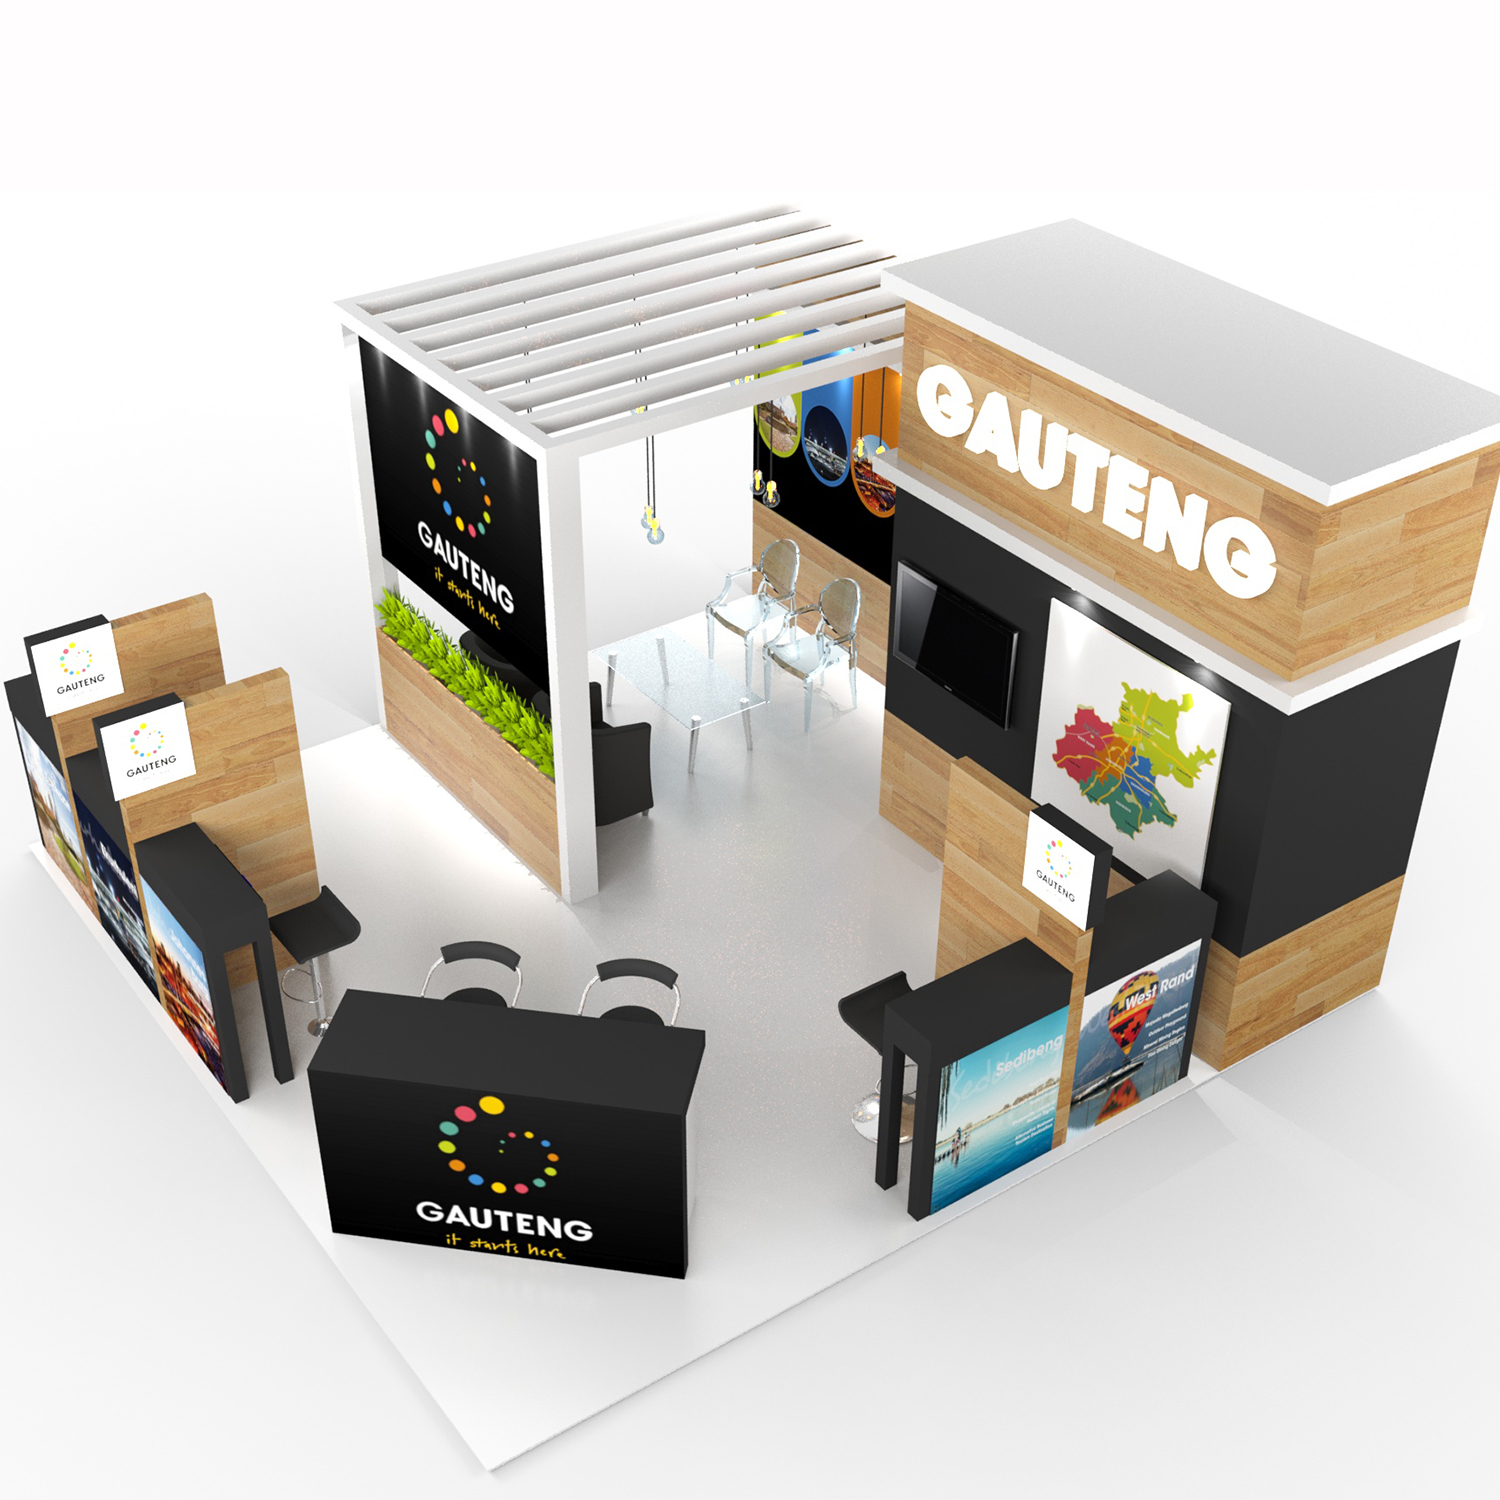 Exhibition Stand Companies Johannesburg : Exhibition stand design gauteng tourism authority